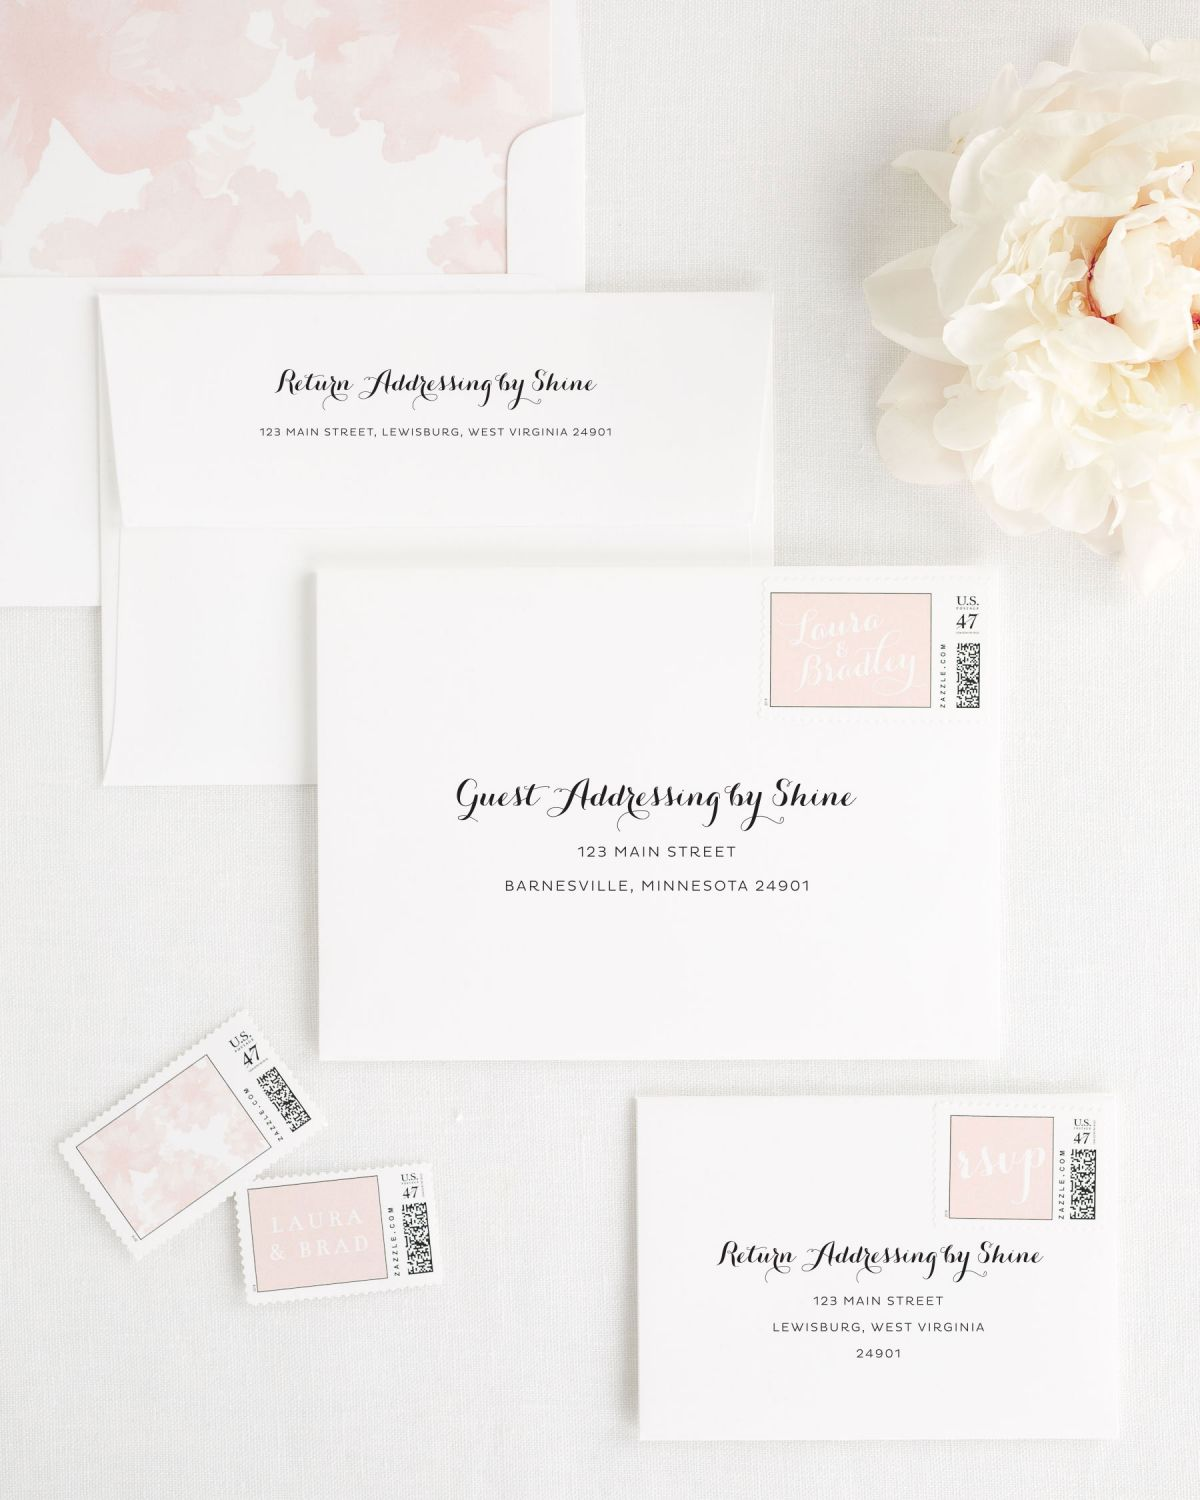 Wedding Invitation Envelopes with Address Printing